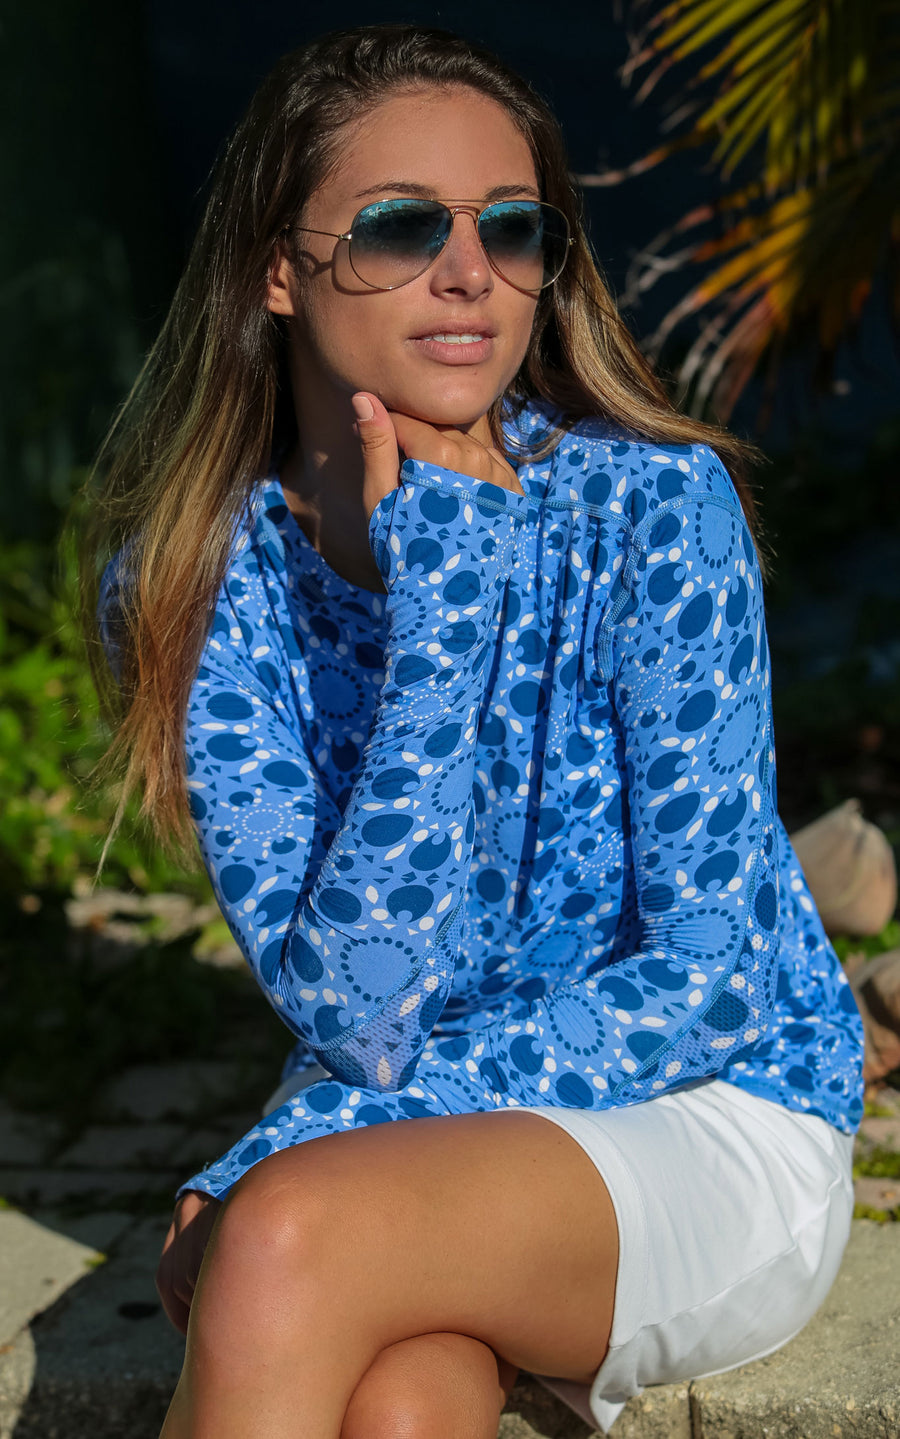 Sun Seeker Blue Crew Neck Sun Protective Top - FINAL SALE